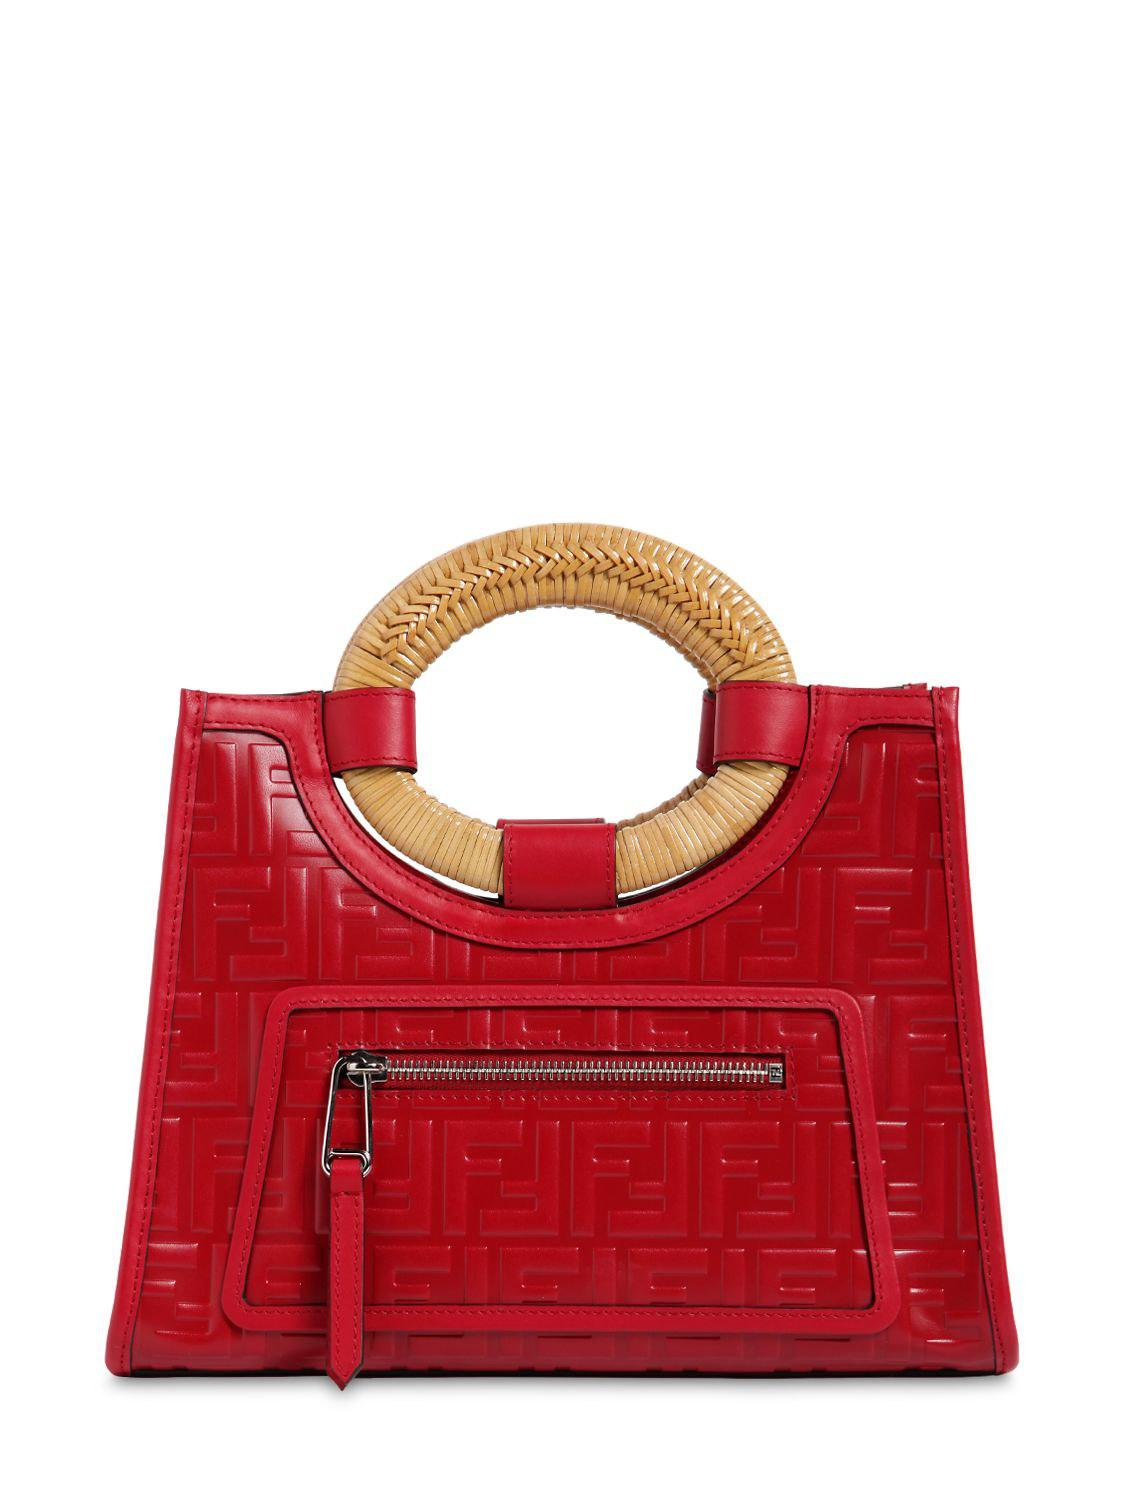 Lyst - Fendi Small Runaway Tote Bag in Red 930674a285191